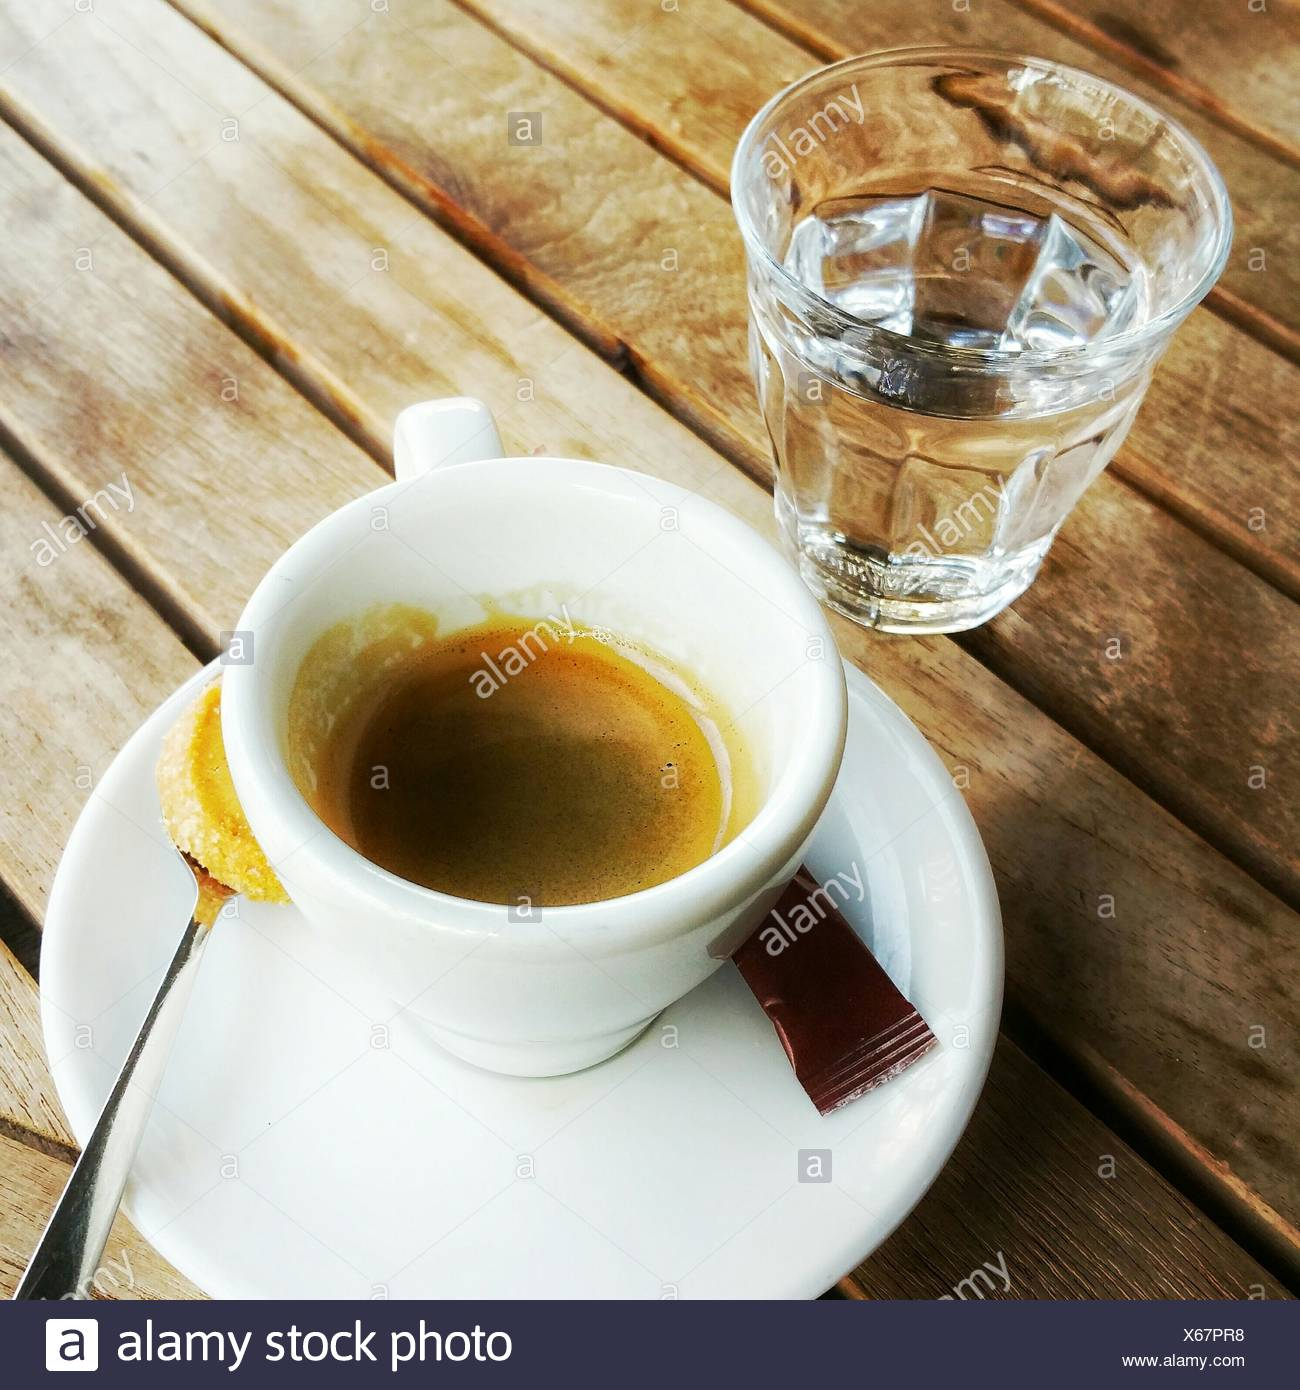 High Angle View Of Espresso Coffee With Water On Table - Stock Image